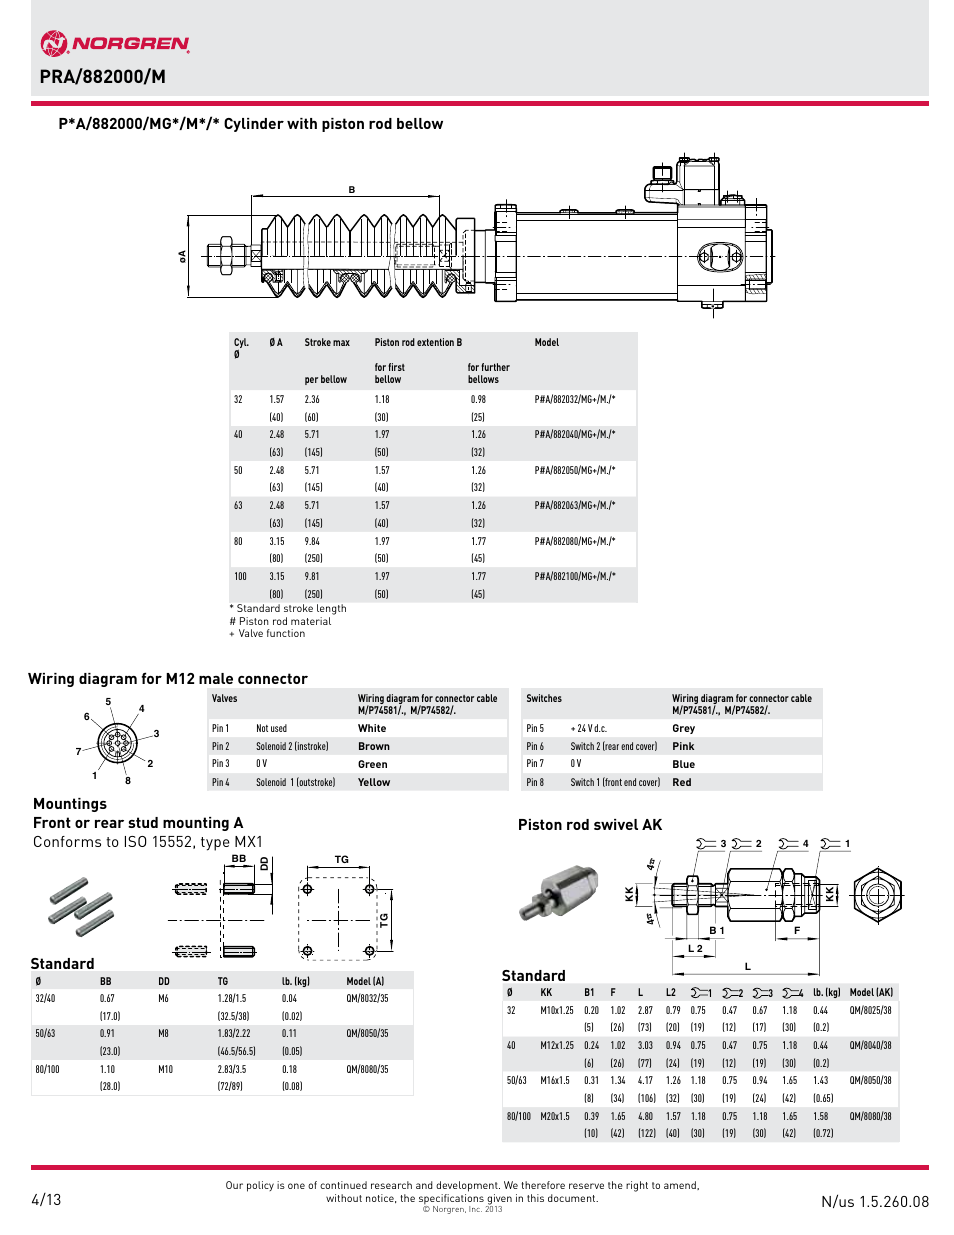 Standard, Wiring diagram for m12 male connector | Norgren PRA/882000 on valve operation diagram, valve cut sheet, valve packing diagram, valve guide, valve plug, valve assembly, valve regulator, valve flow diagram, valve body, valve piston, valve valve, valve compressor, valve radio, valve adjustment, valve actuator diagram, valve system, valve solenoid, valve components diagram, valve schematic, valve timing,